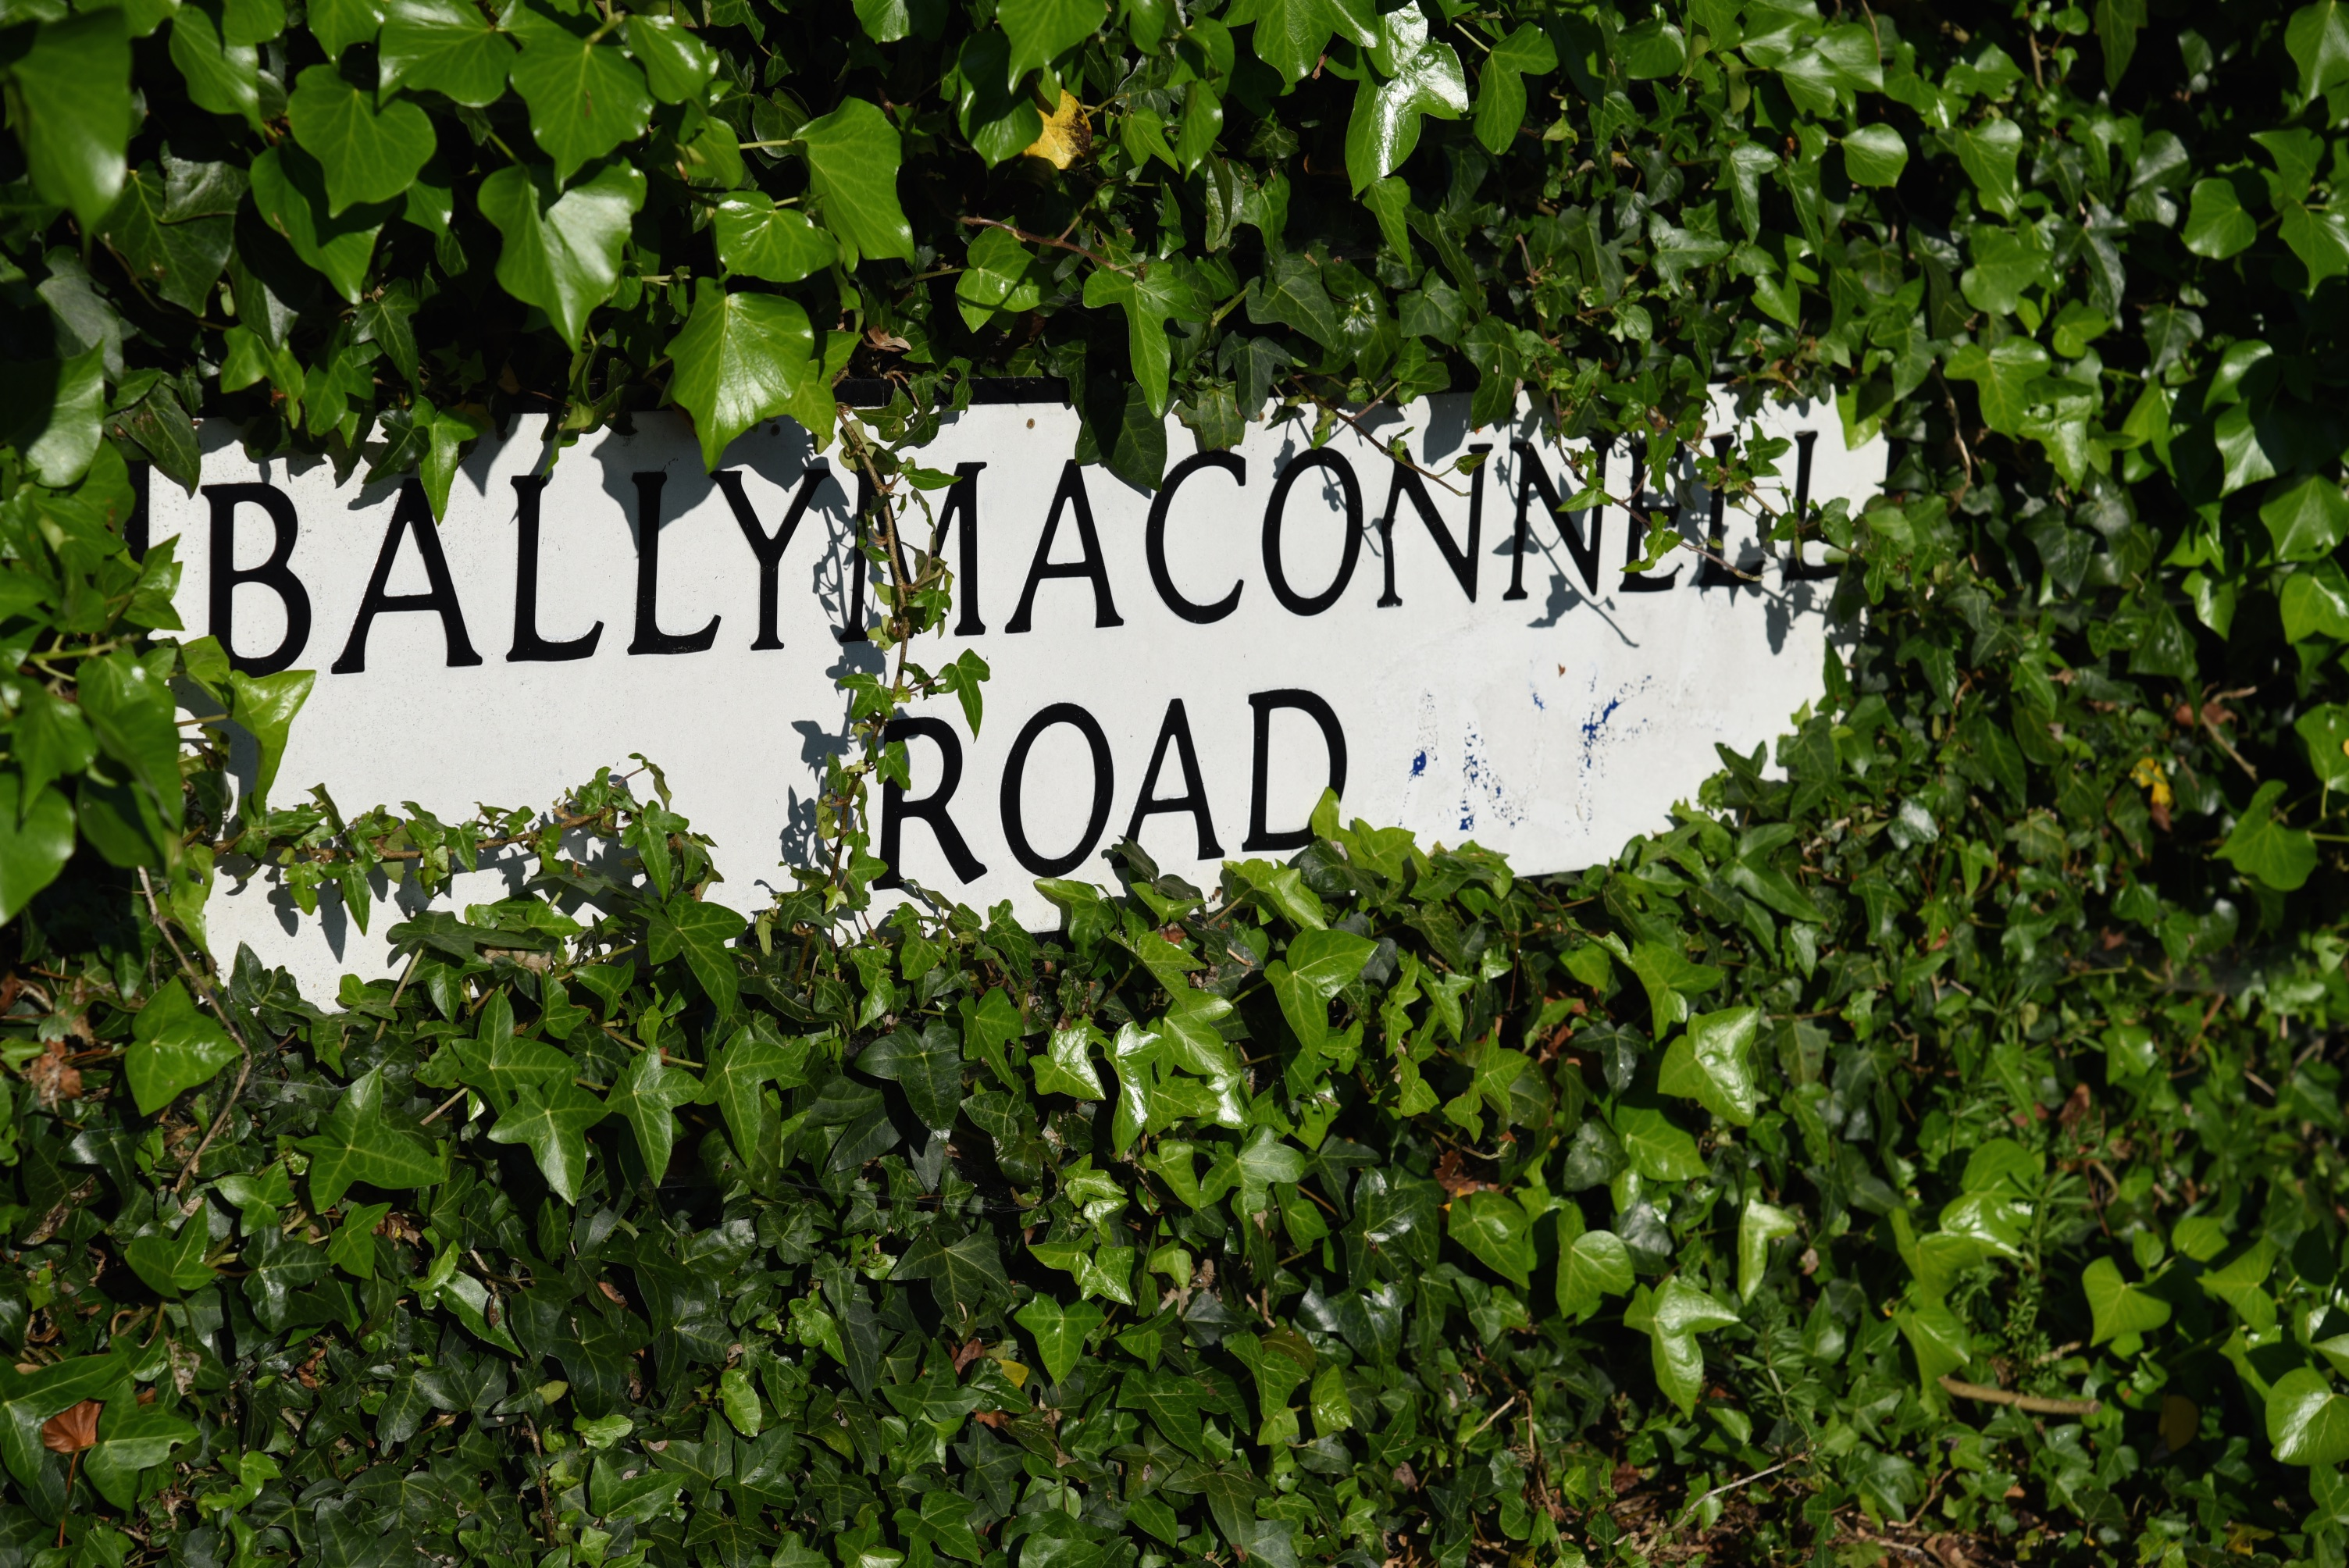 Ballymaconnell